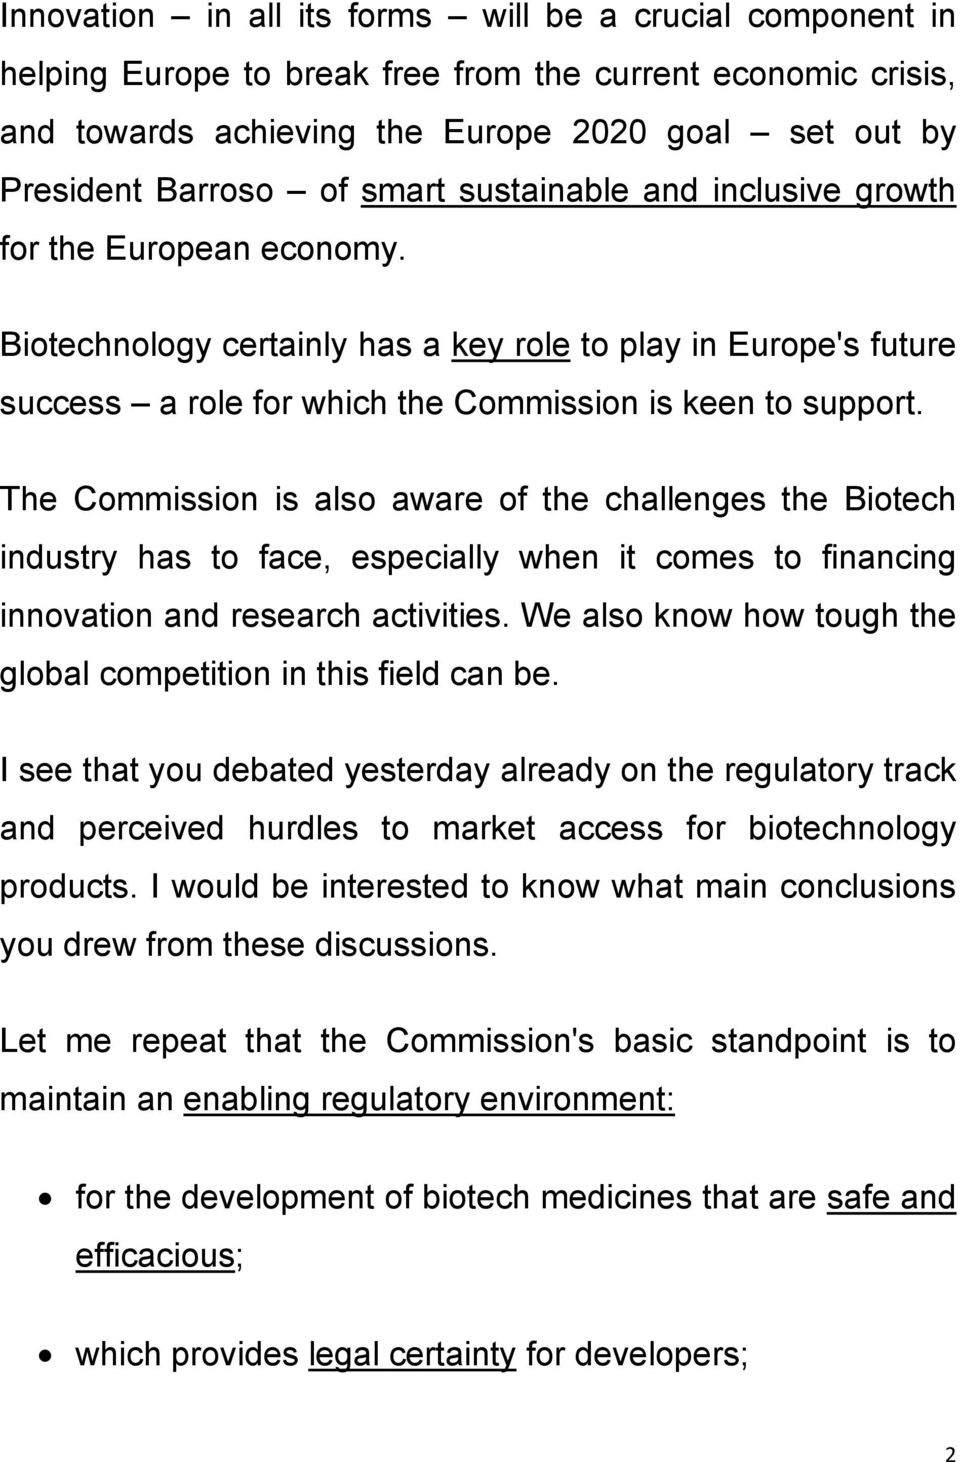 The Commission is also aware of the challenges the Biotech industry has to face, especially when it comes to financing innovation and research activities.